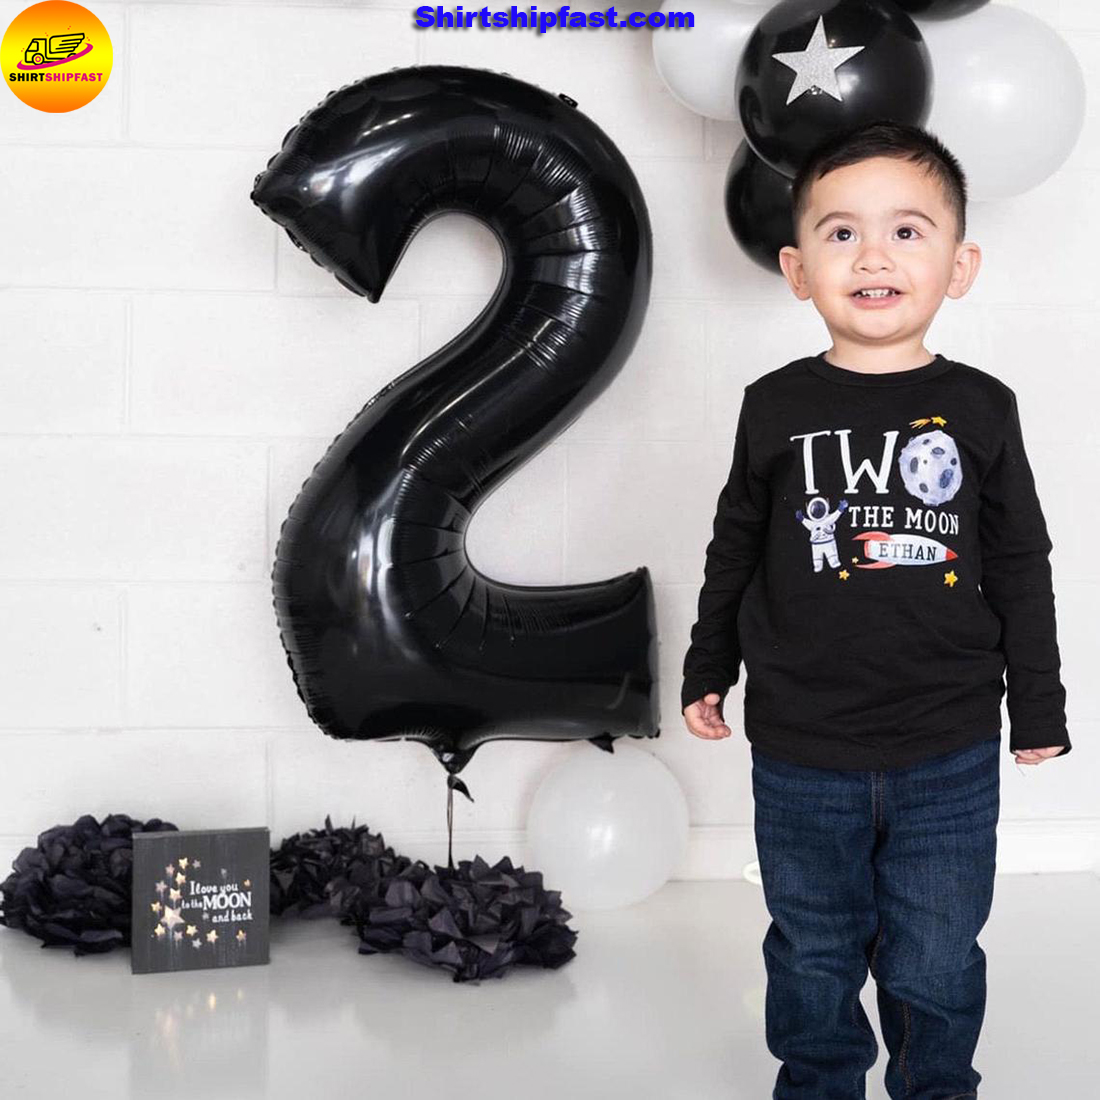 Personalized custom name Two the moon 2nd birthday shirt boys - Picture 2